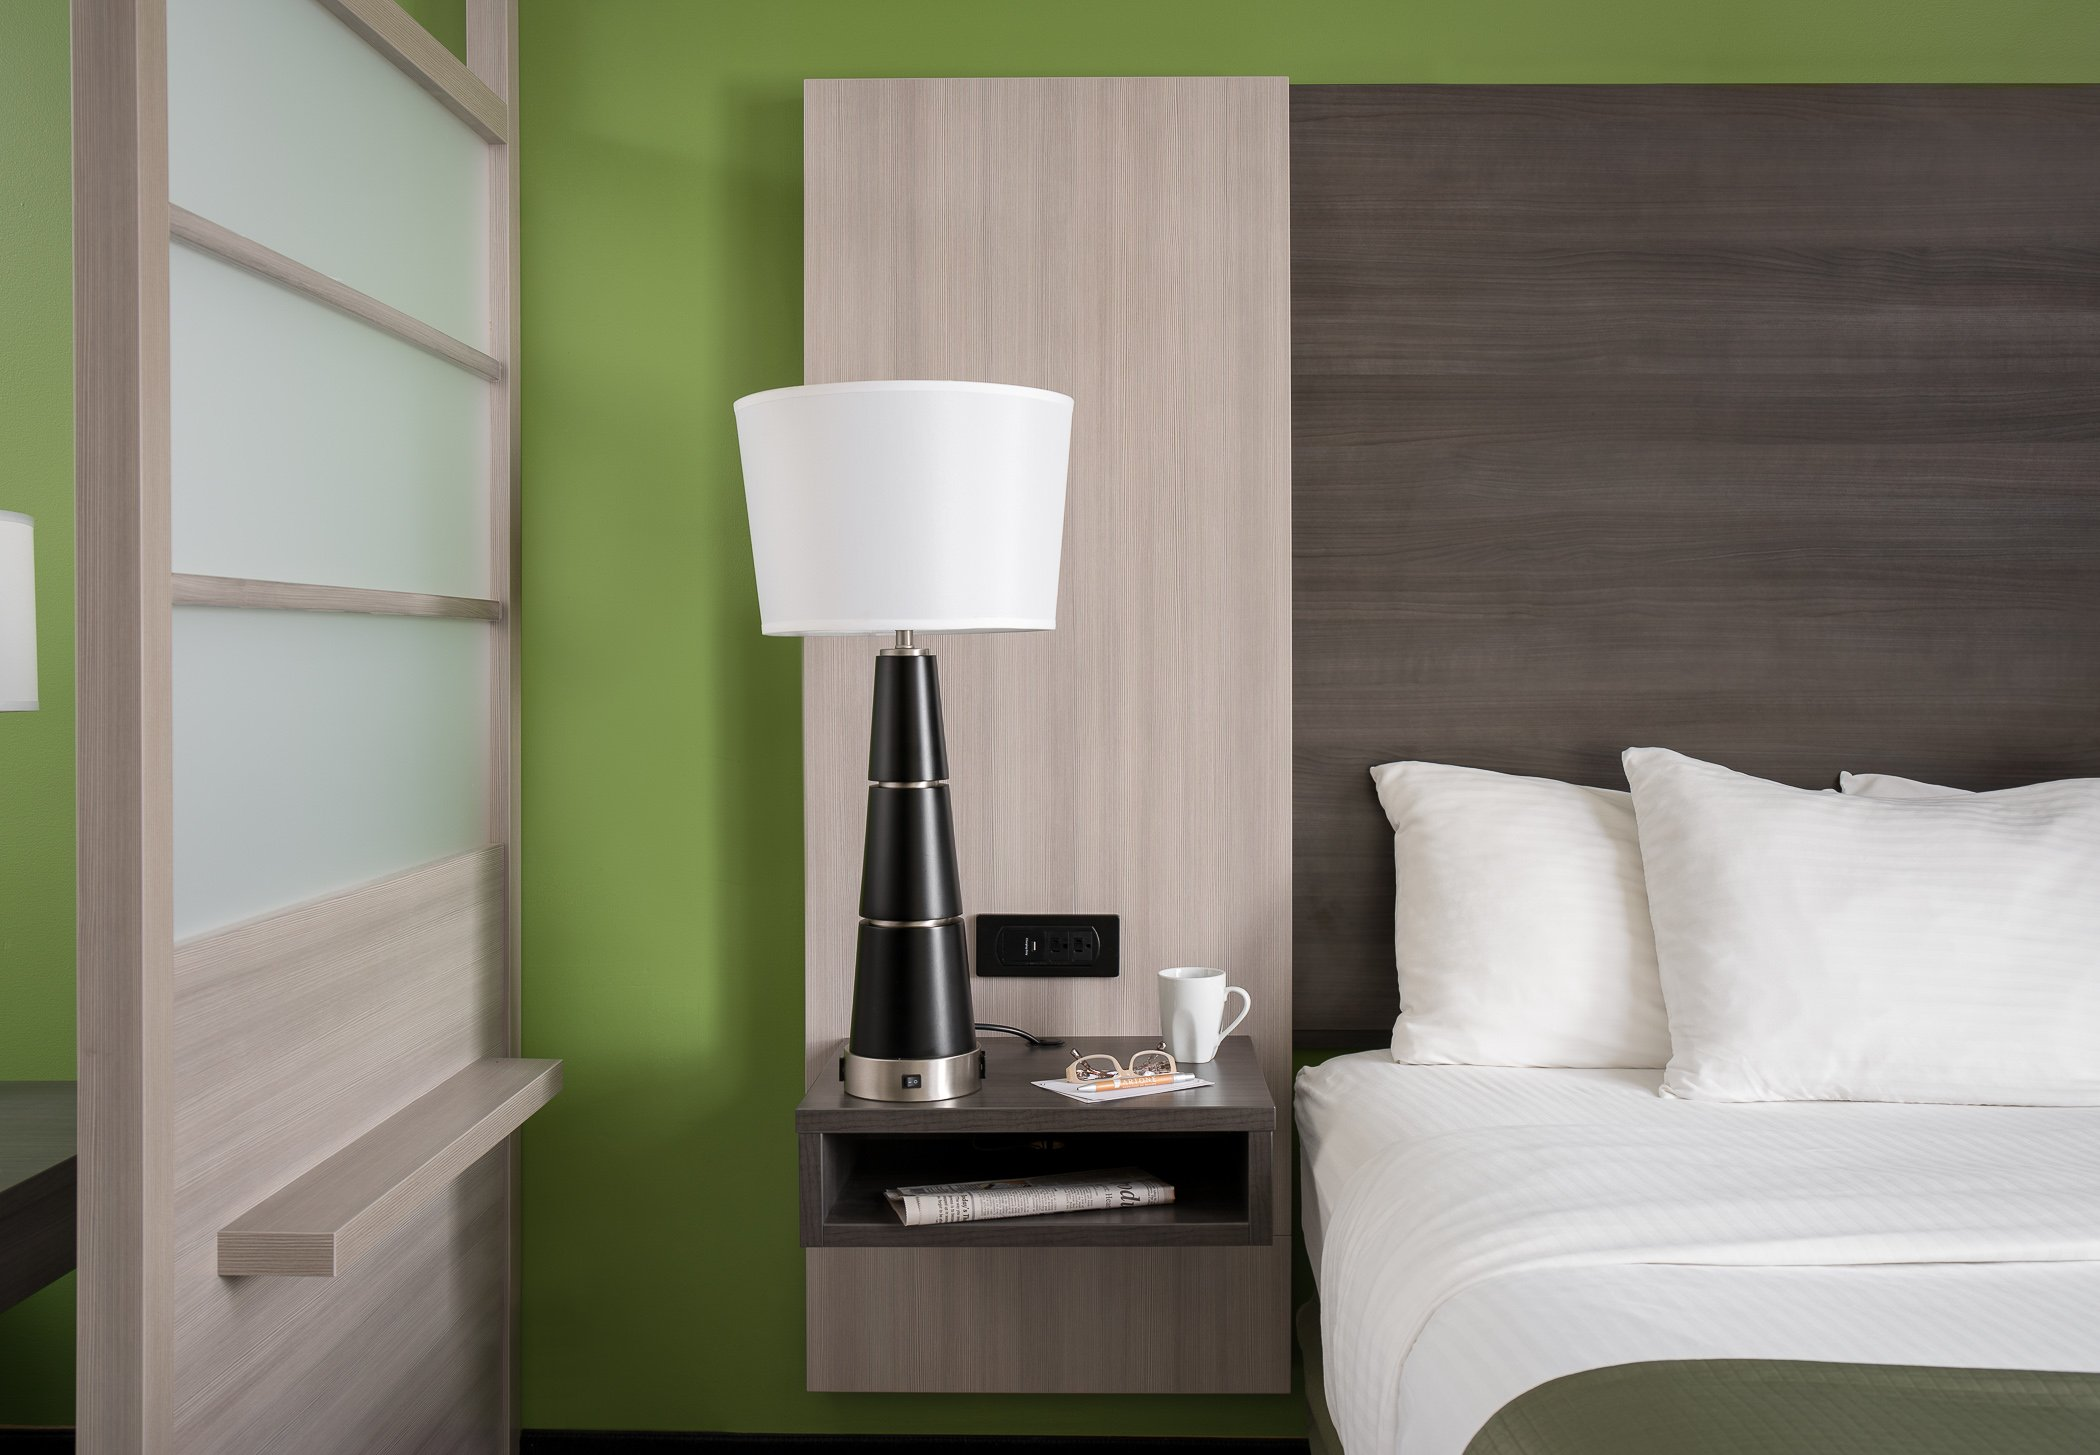 Best Hotel Room Design Tips for Small Hotel Rooms